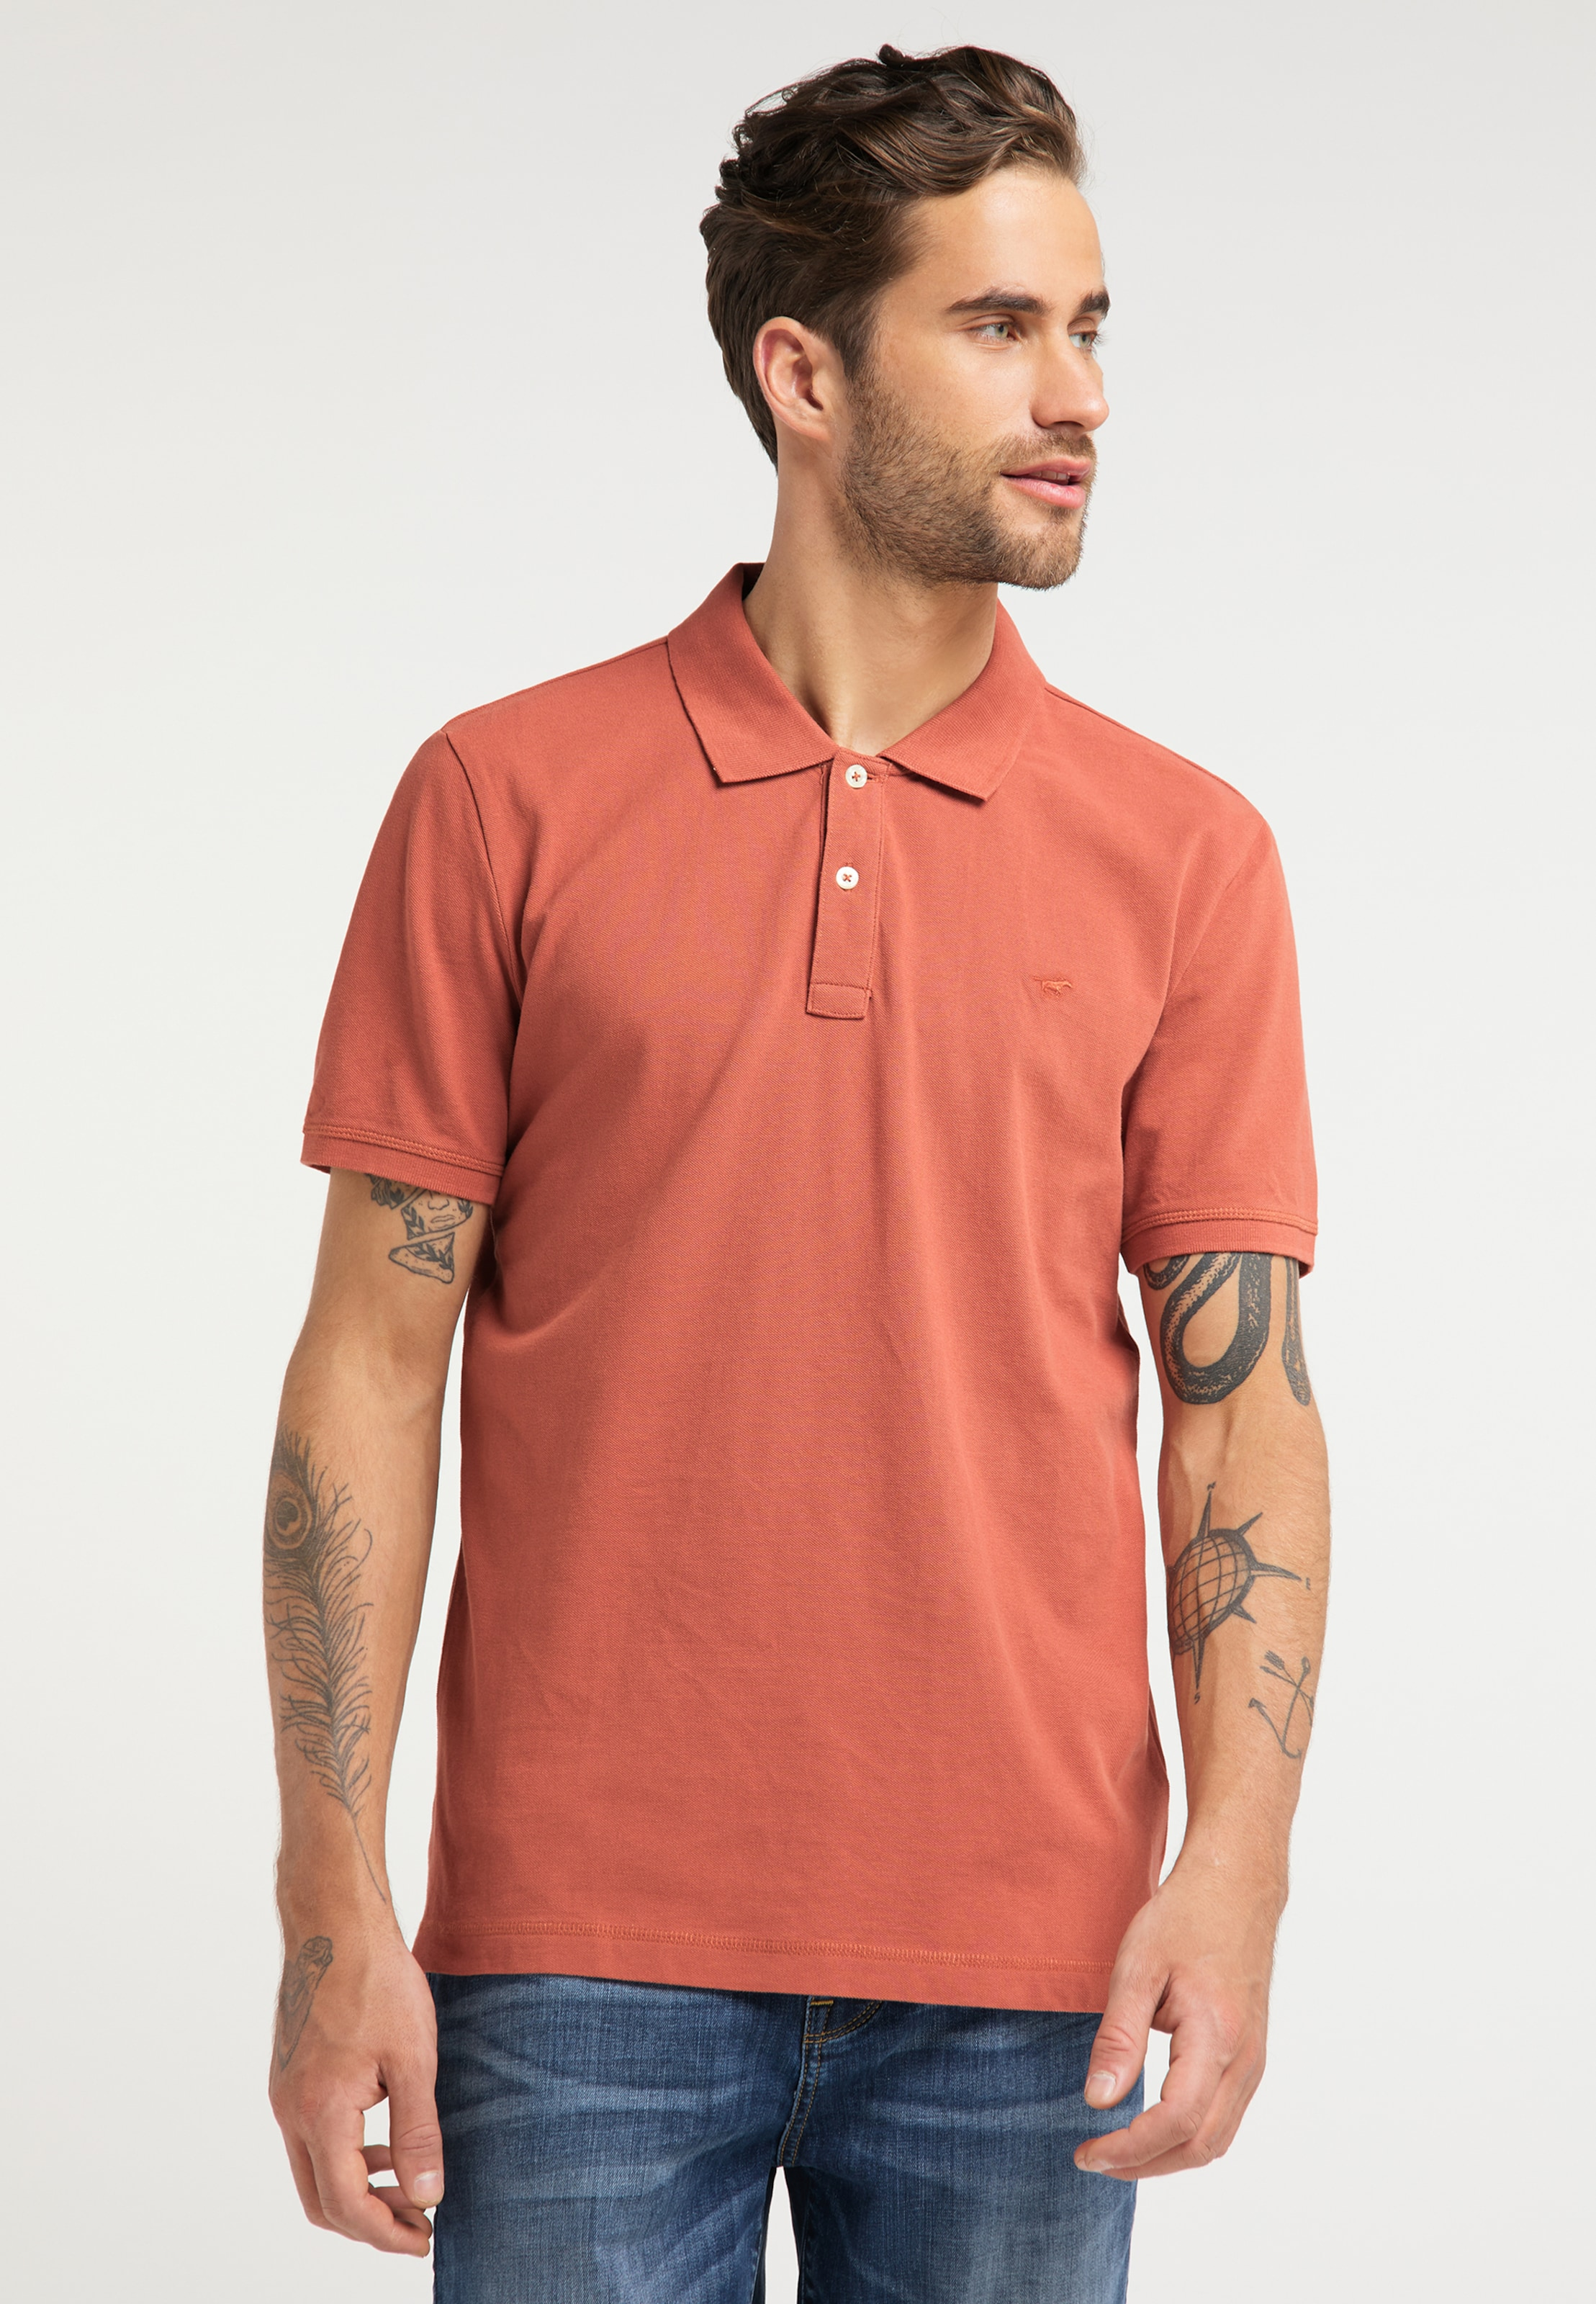 MUSTANG T-Shirt ' Polo Paplo' in hellrot Unifarben 1009515000016